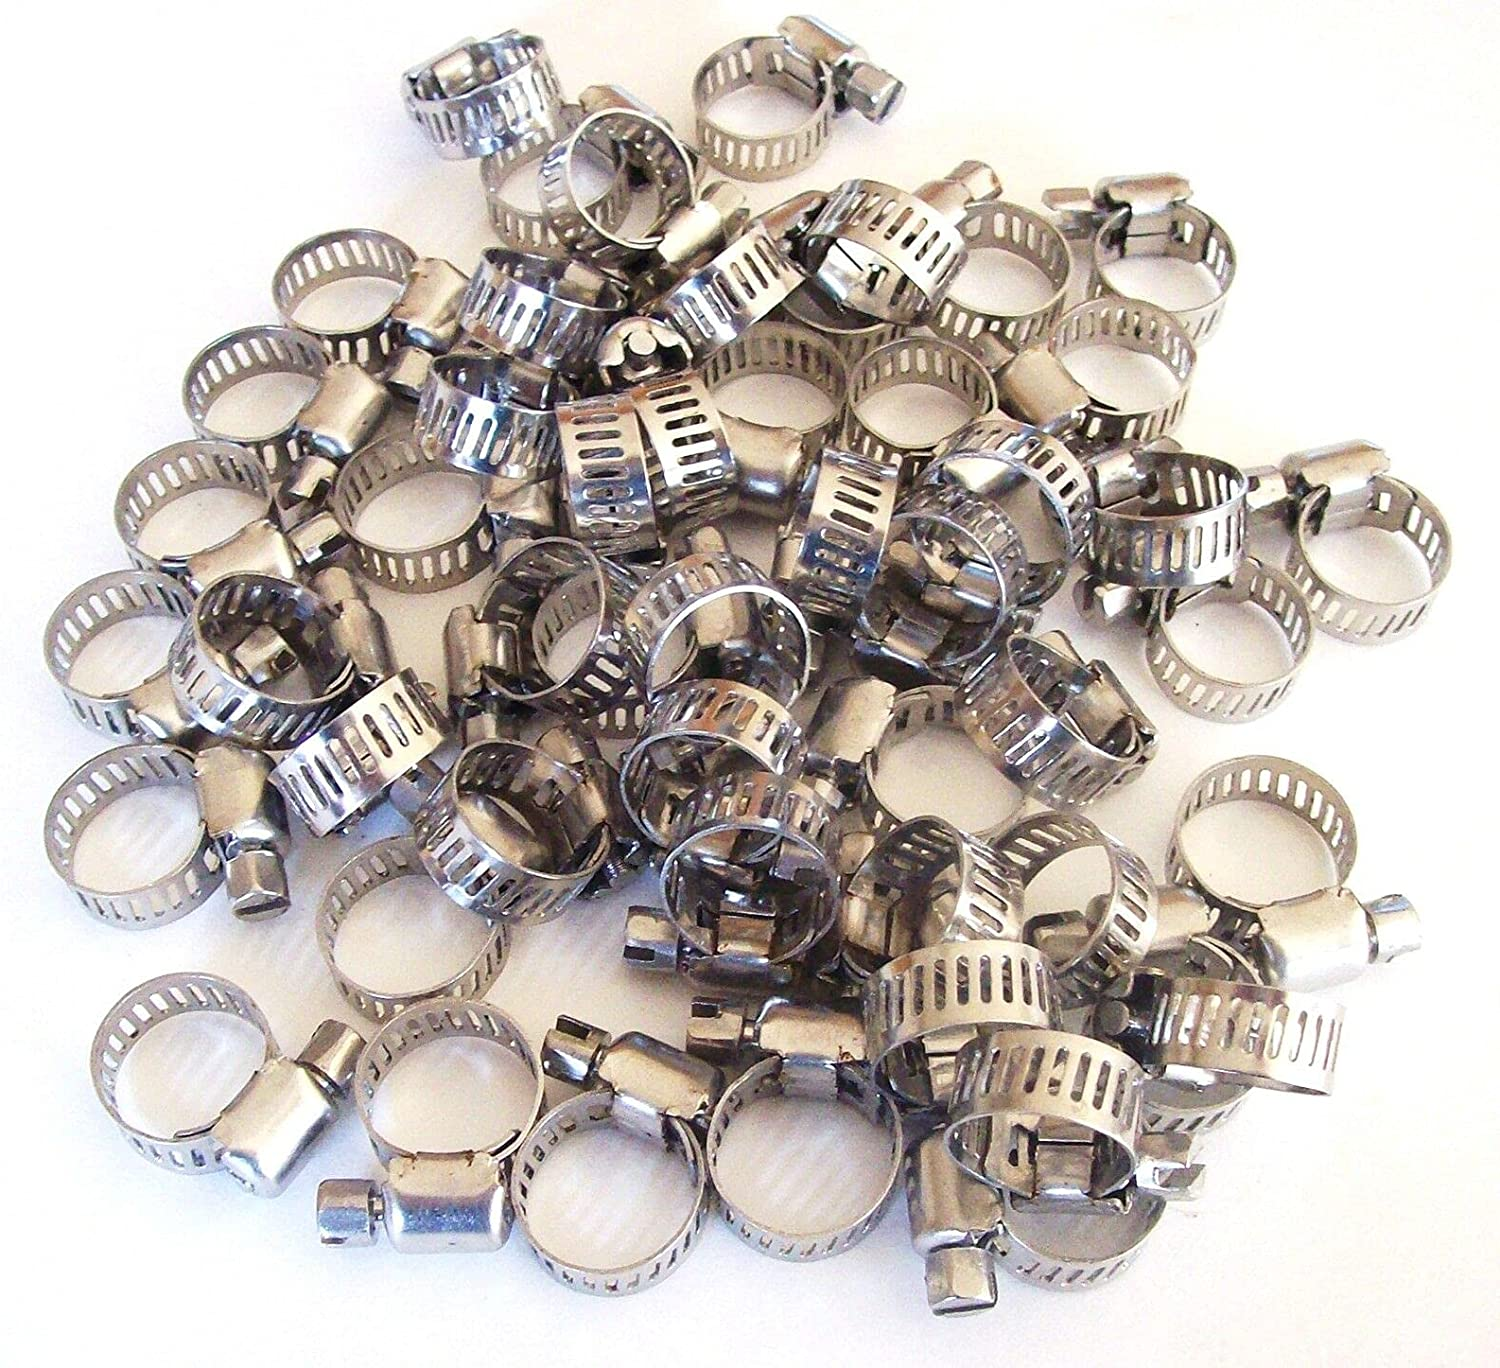 50 GOLIATH INDUSTRIAL STAINLESS El Paso Mall STEEL HOSE 1 - SS CLAMPS Tampa Mall 4